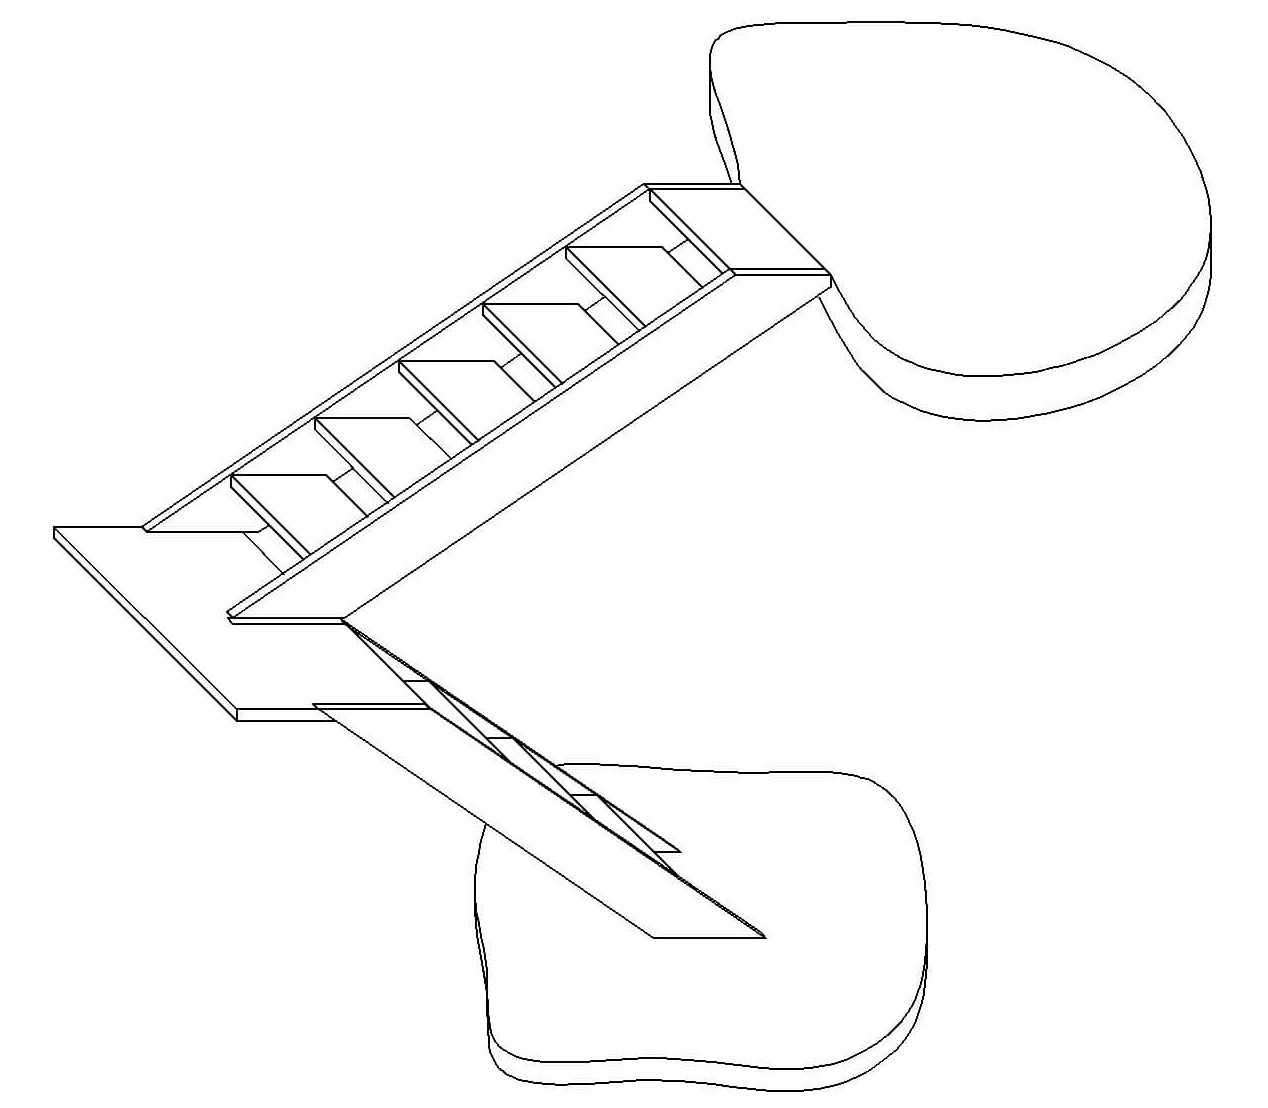 3D U-Shaped staircase calculator: Building materials & half